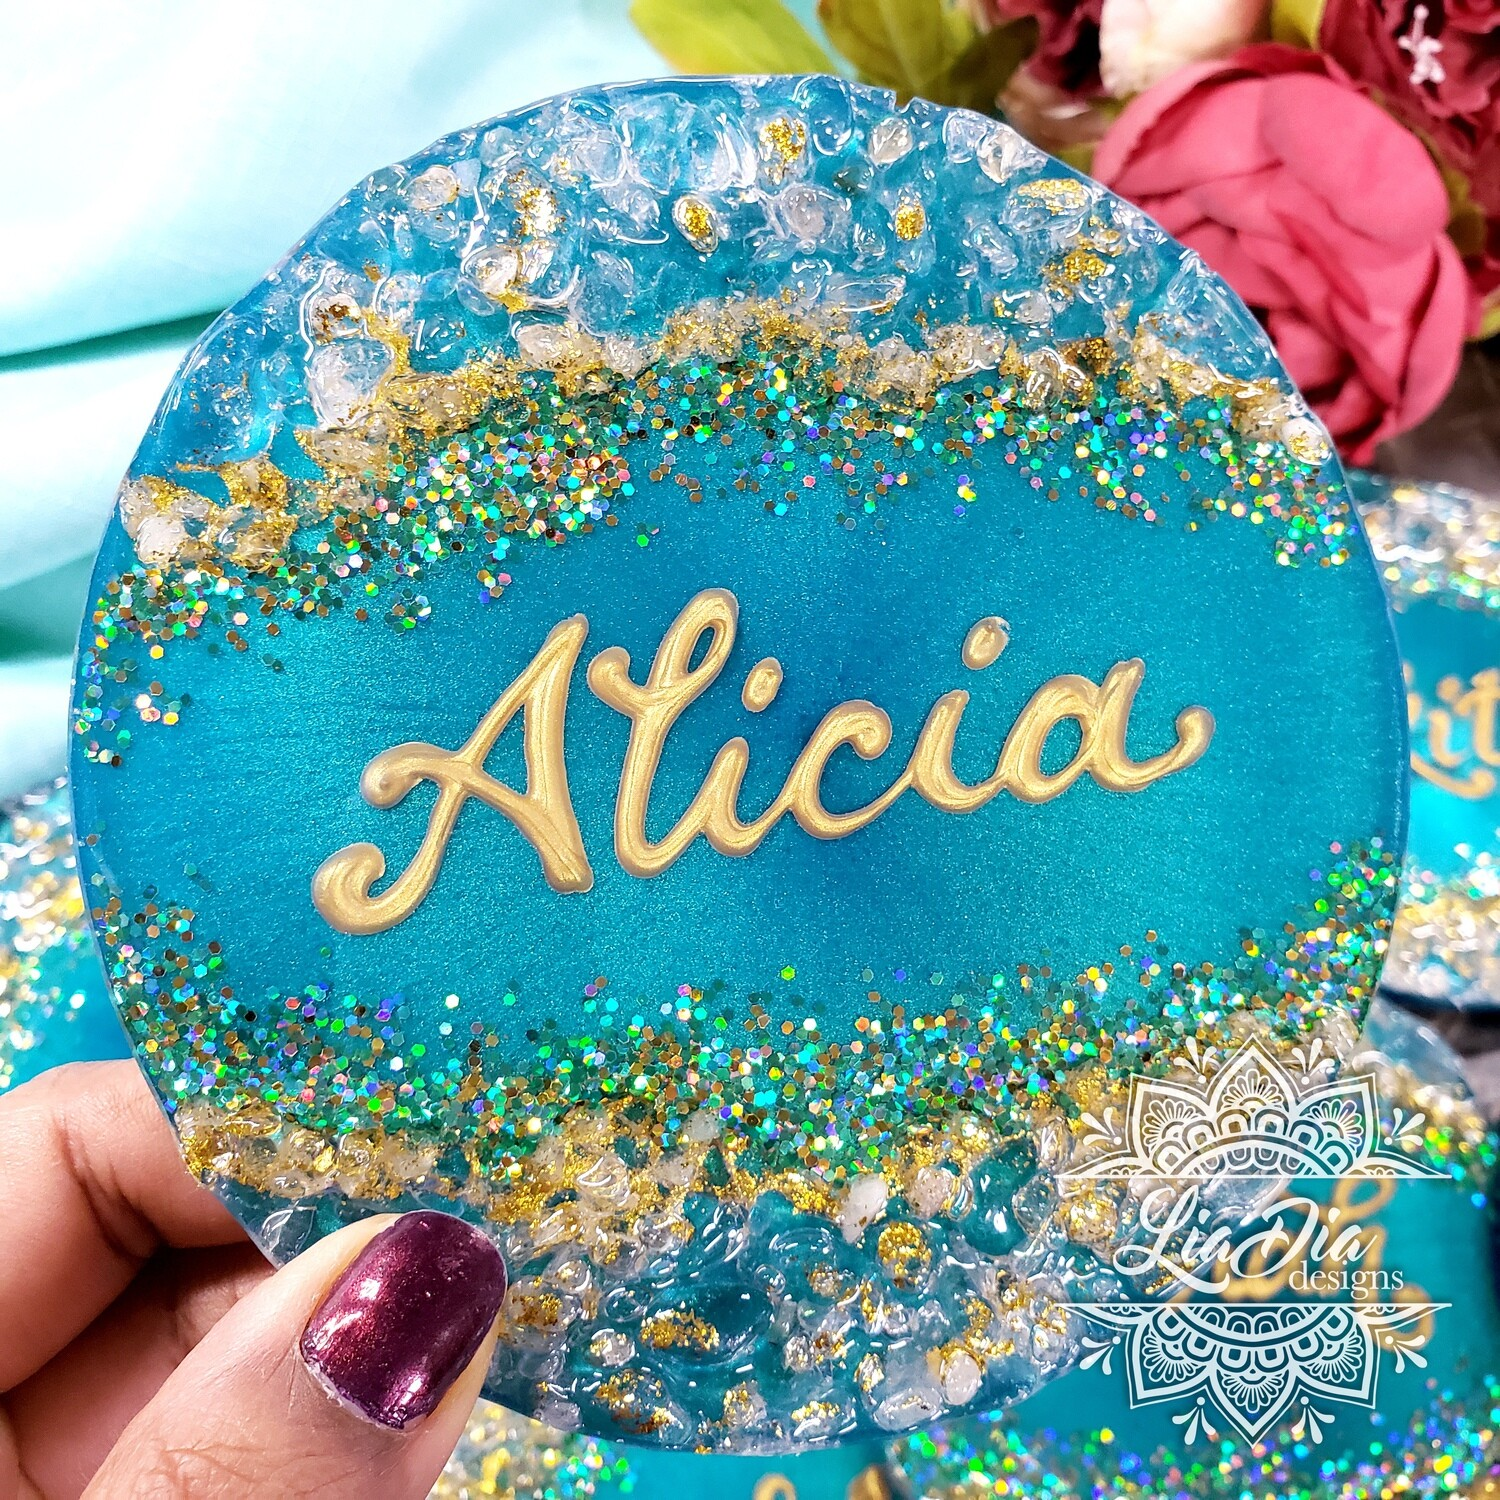 Personalized Geode Style Jewelry Tray / Coaster - 1 tray/coaster